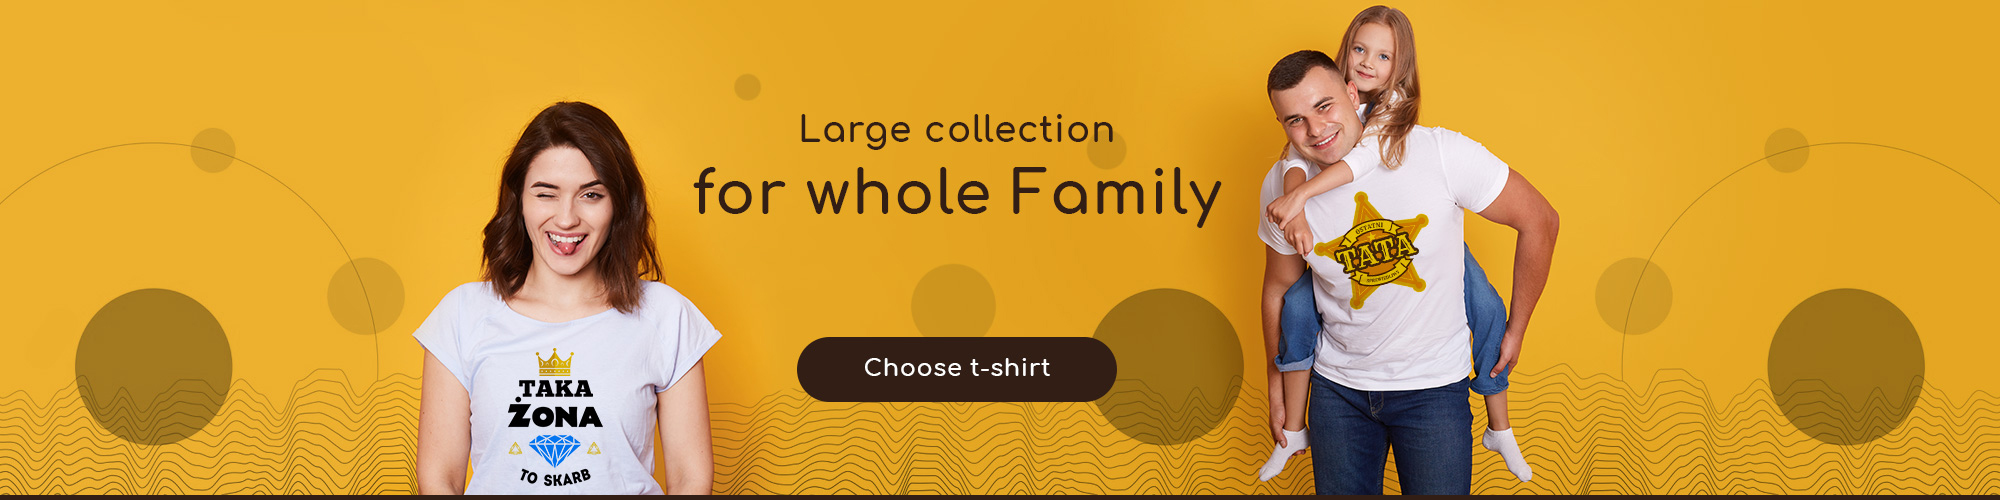 T-shirts for whole Family